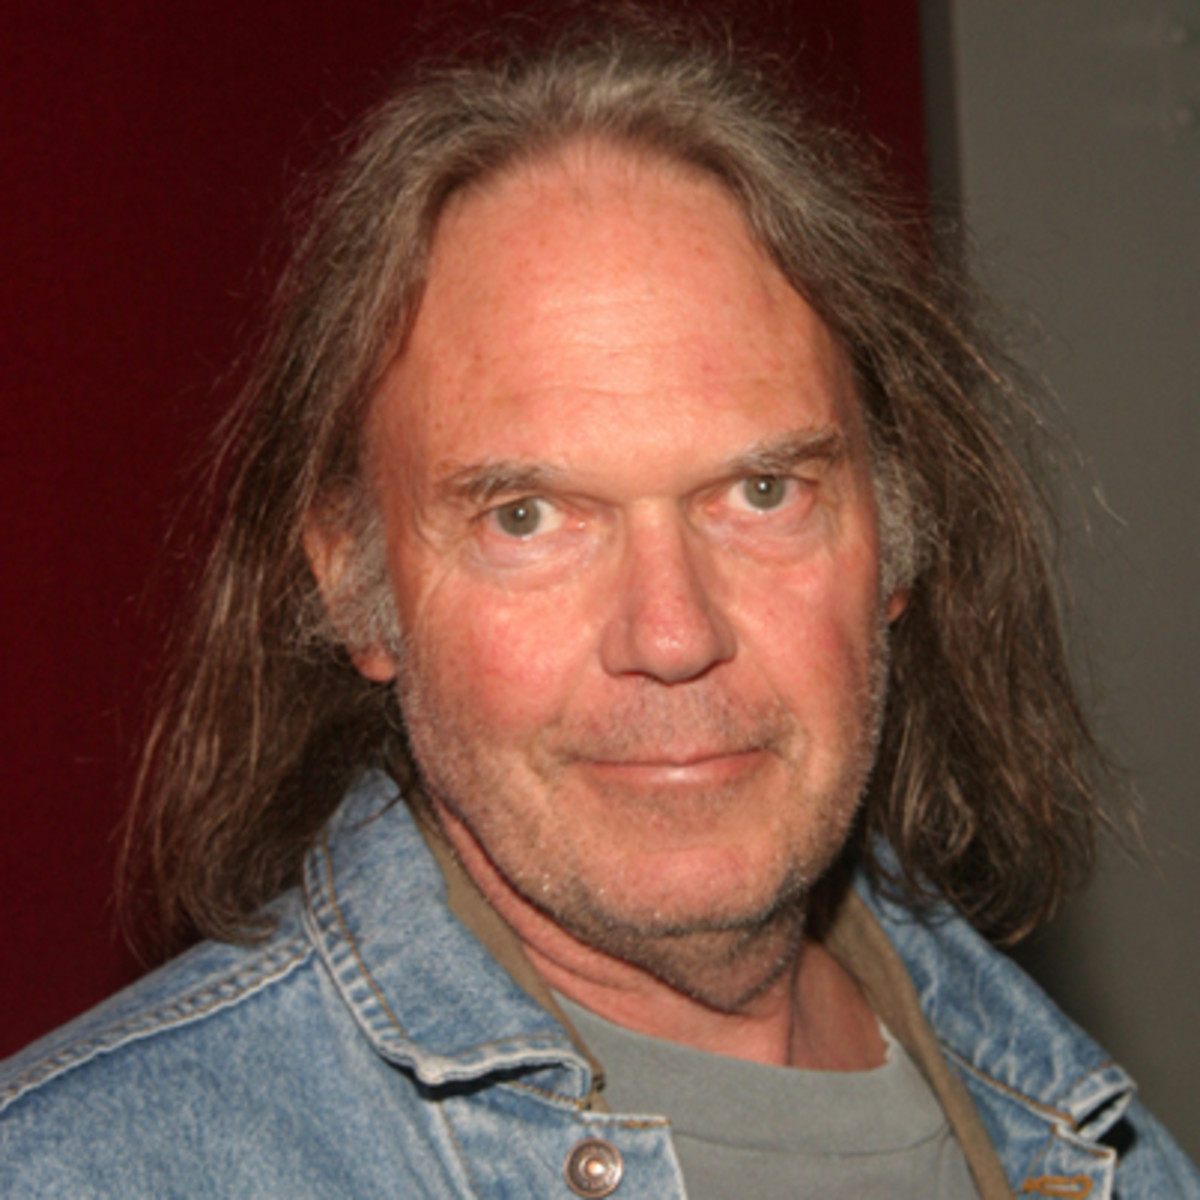 neil young old man tabneil young dead man, neil young heart of gold, neil young old man, neil young harvest, neil young peace trail, neil young dead man tab, neil young harvest moon, neil young heart of gold chords, neil young old man lyrics, neil young & crazy horse, neil young слушать, neil young harvest moon перевод, neil young dead man chords, neil young on the beach, neil young ohio, neil young wiki, neil young heart of gold скачать, neil young discography, neil young old man tab, neil young скачать